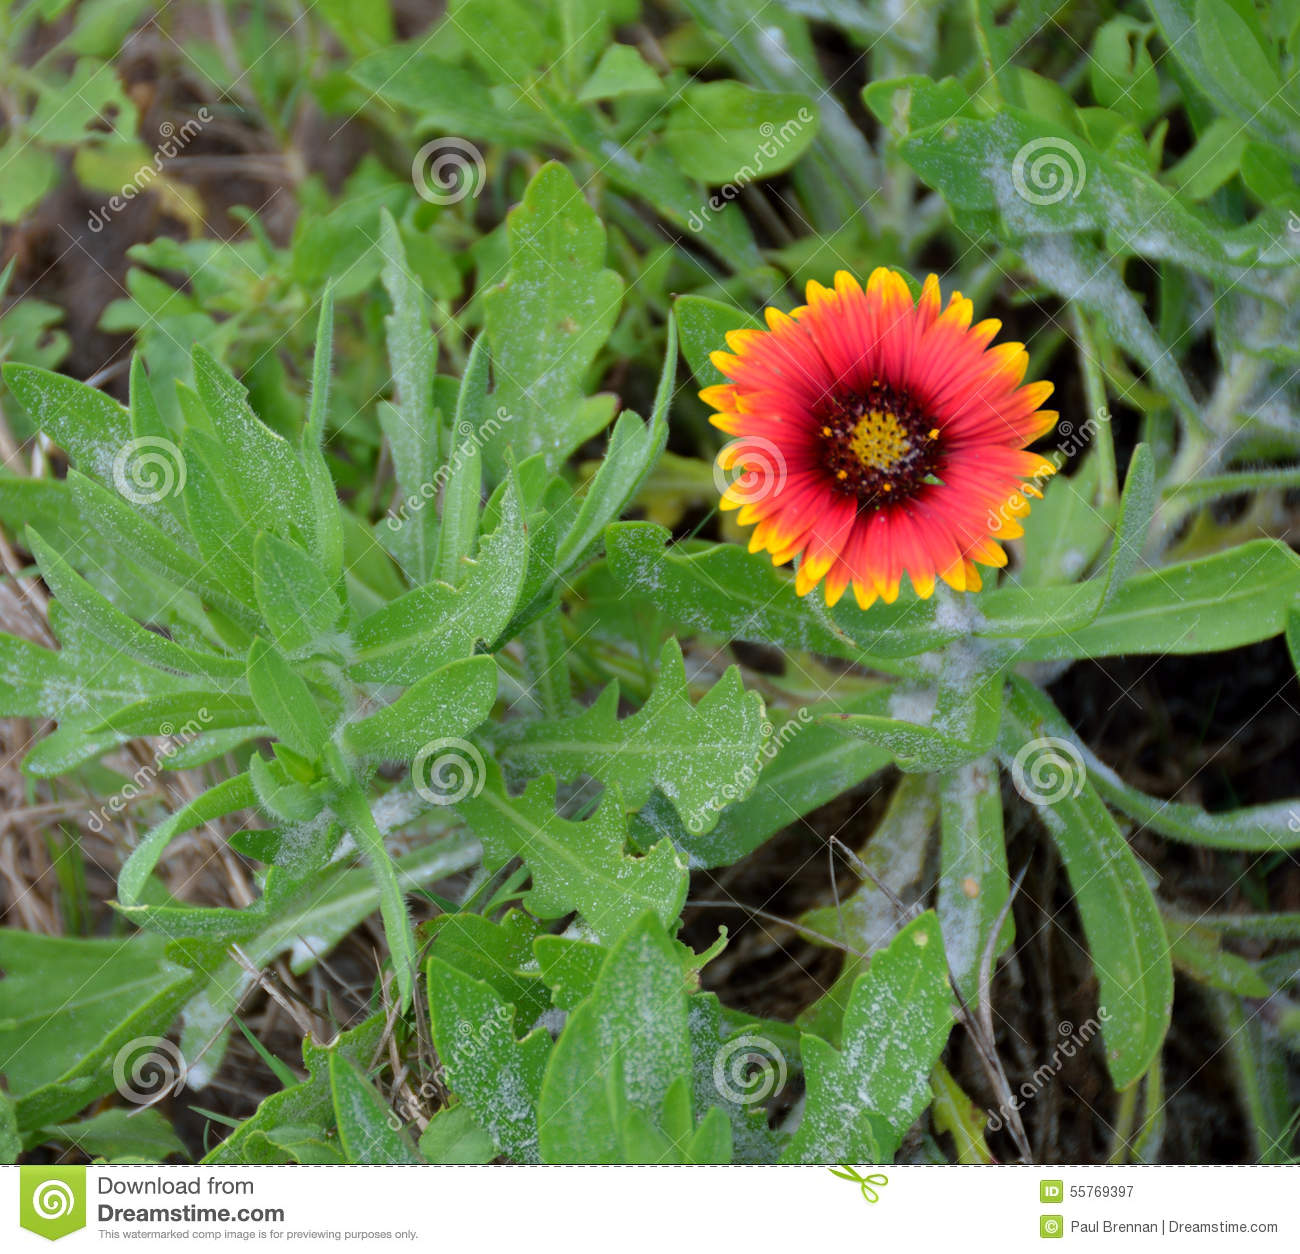 Indian Blanket Flower Plant Stock Image Image Of Outdoors Blanket